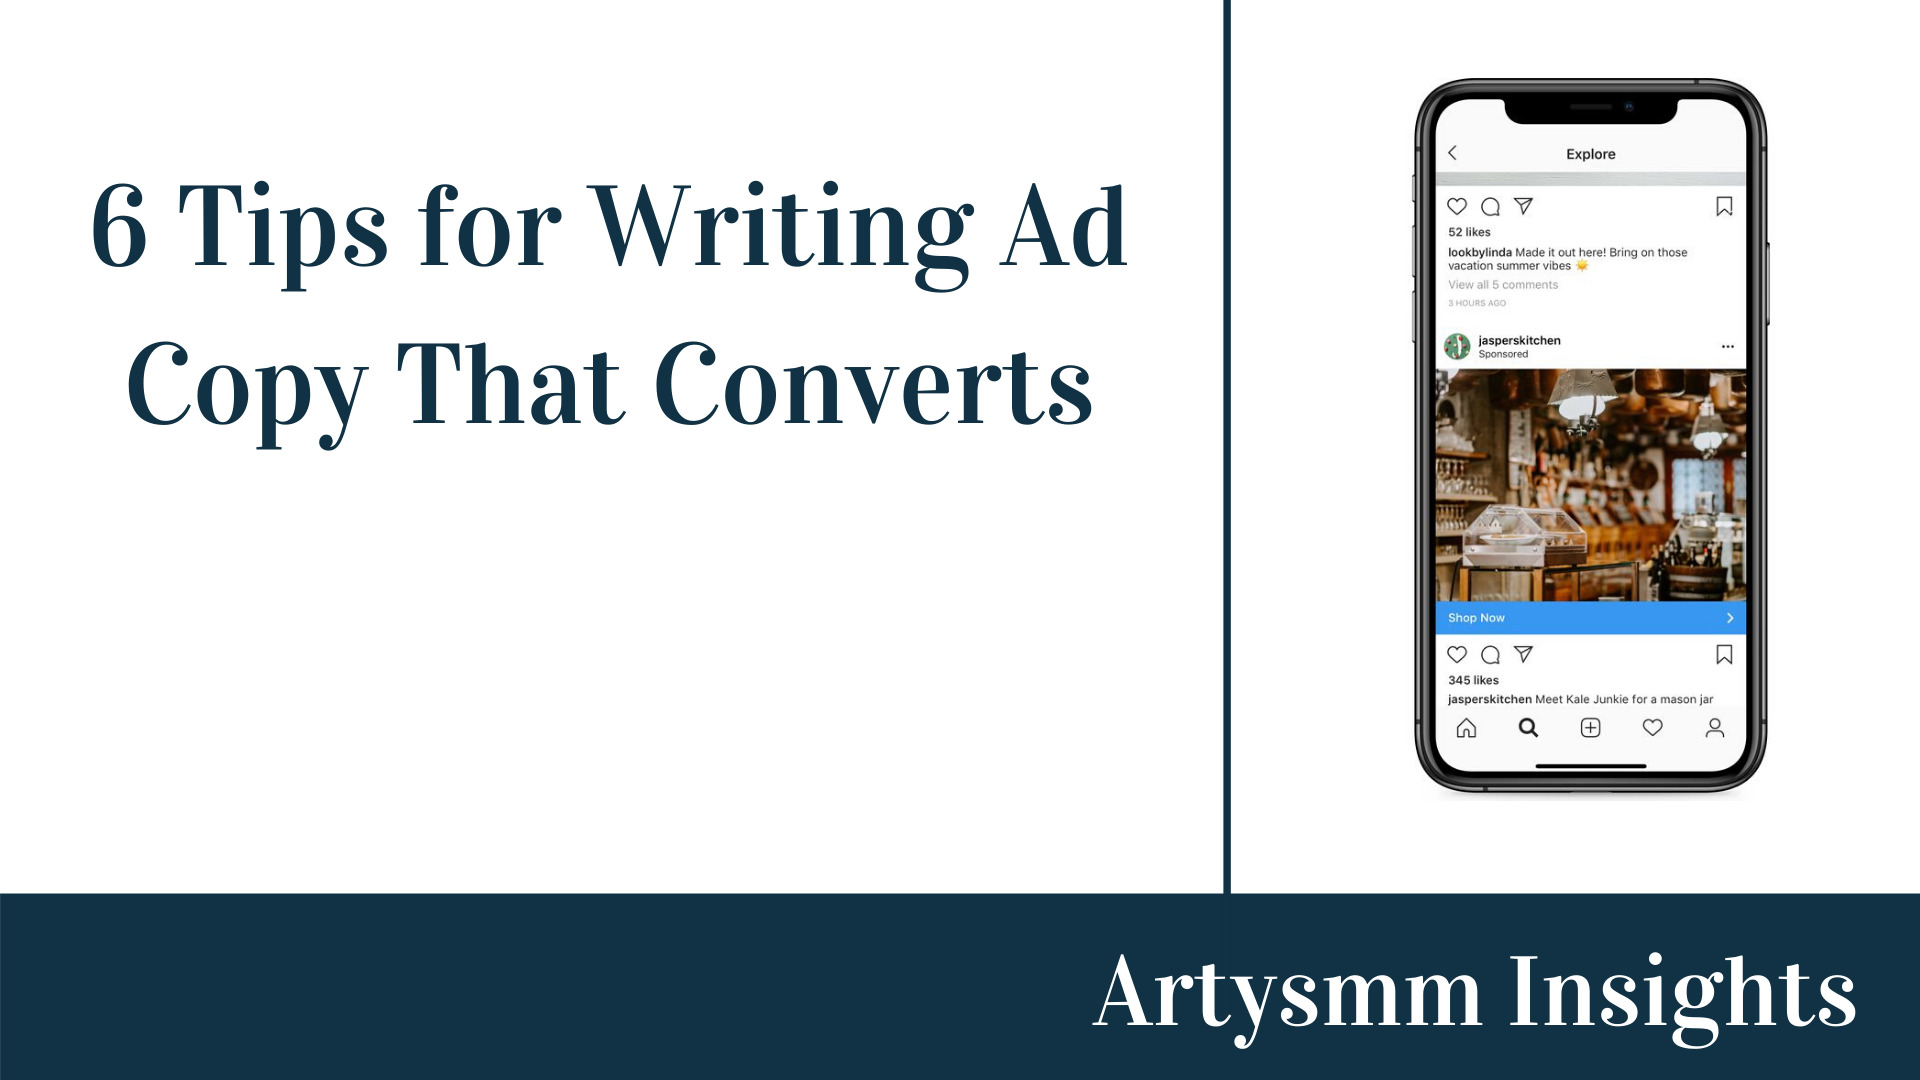 6 Tips For Writing Best Facebook Instagram Ad Copy Artysmm Insights